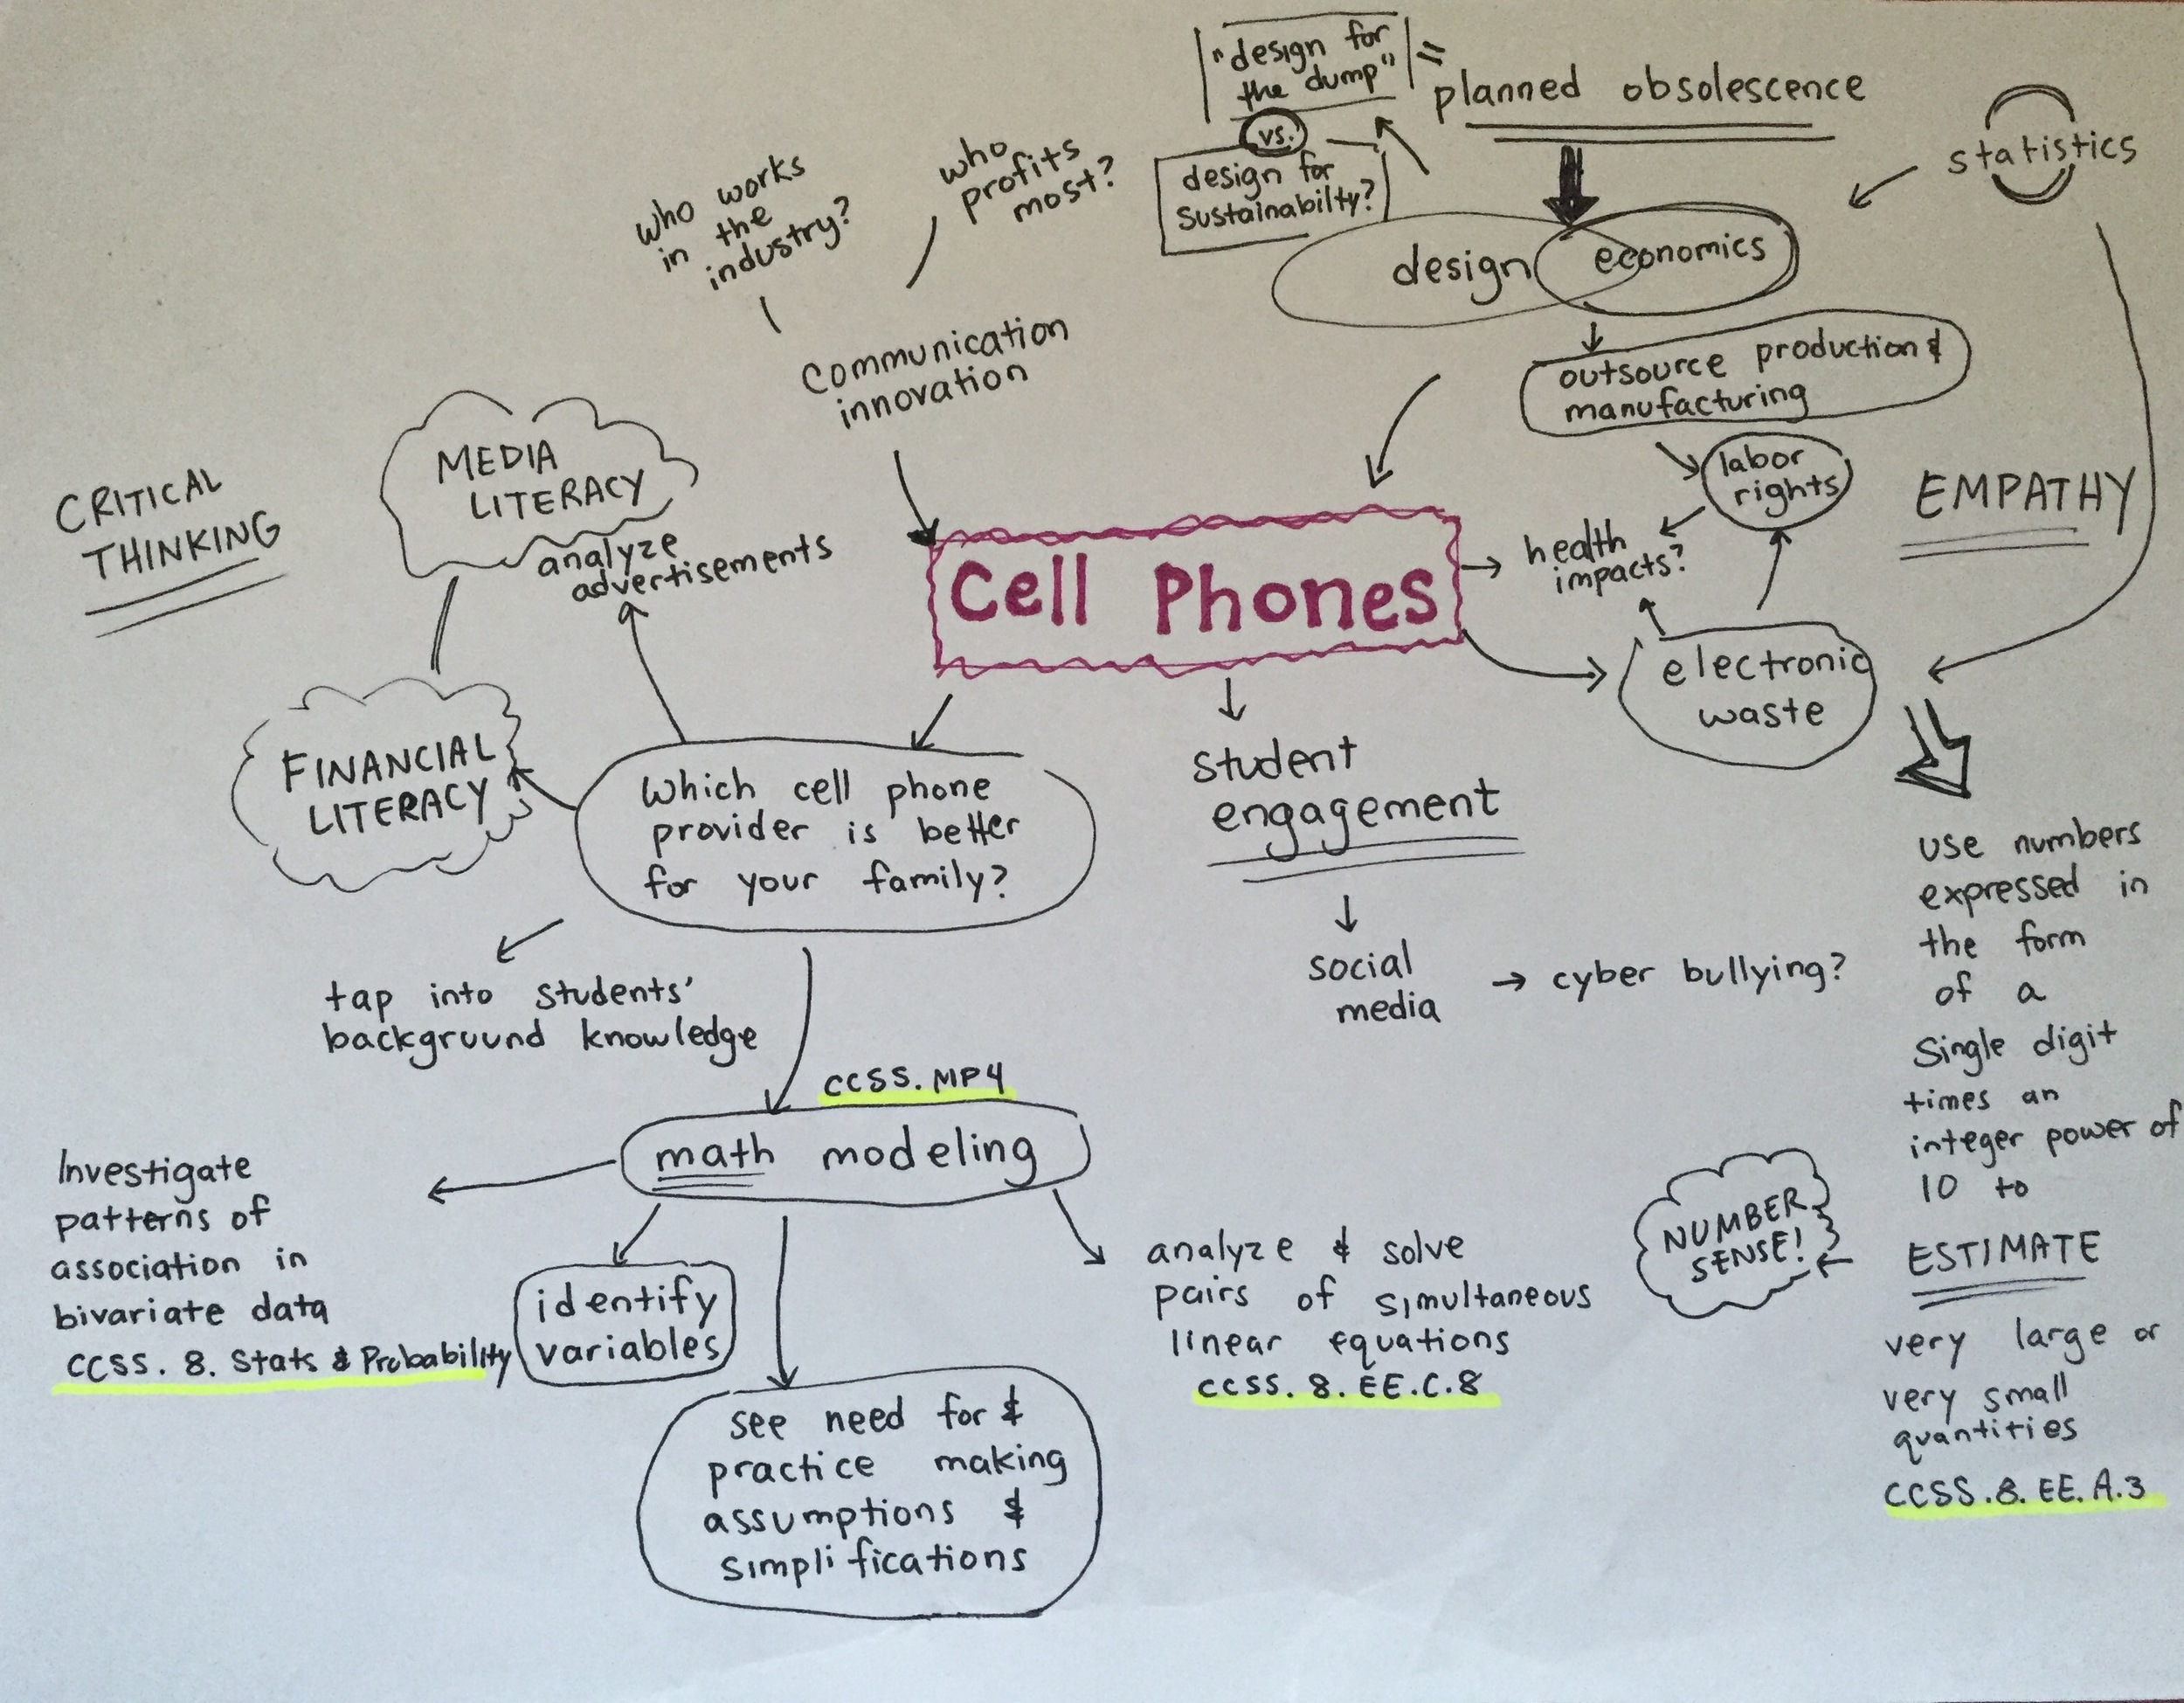 My mind map of Common Core Math Standards, skills, and explorations for the Cell Phone Project